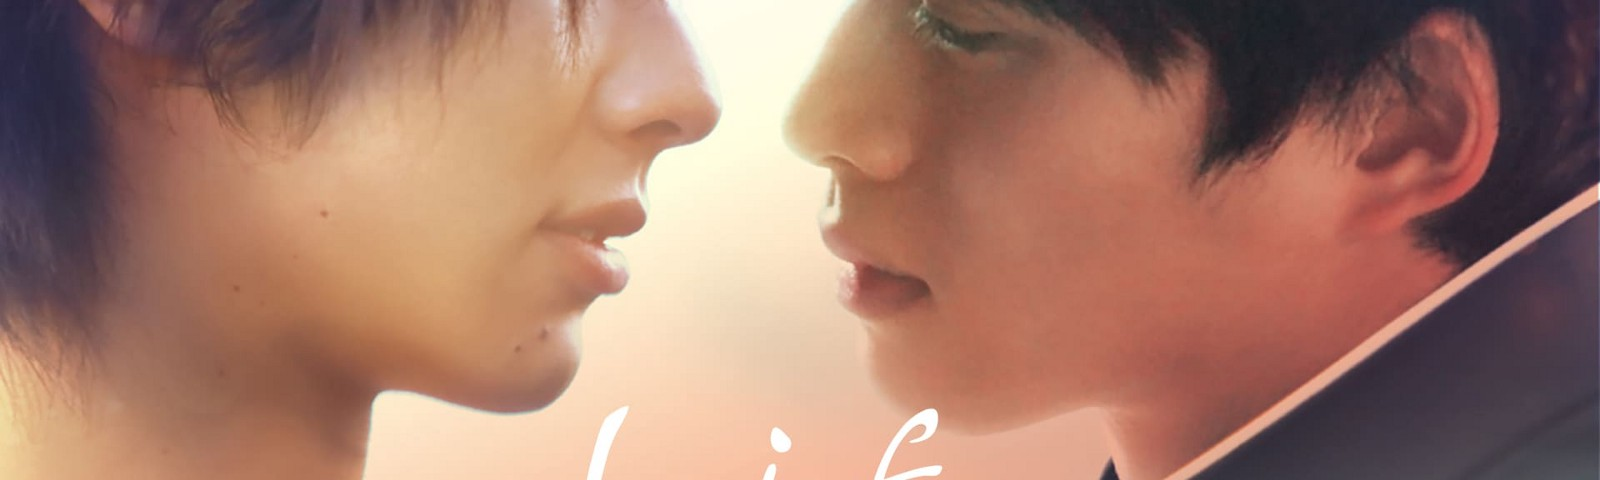 Archive Of Stories Published By Life Love On The Line Drama 1x03 Full Show Viki Medium